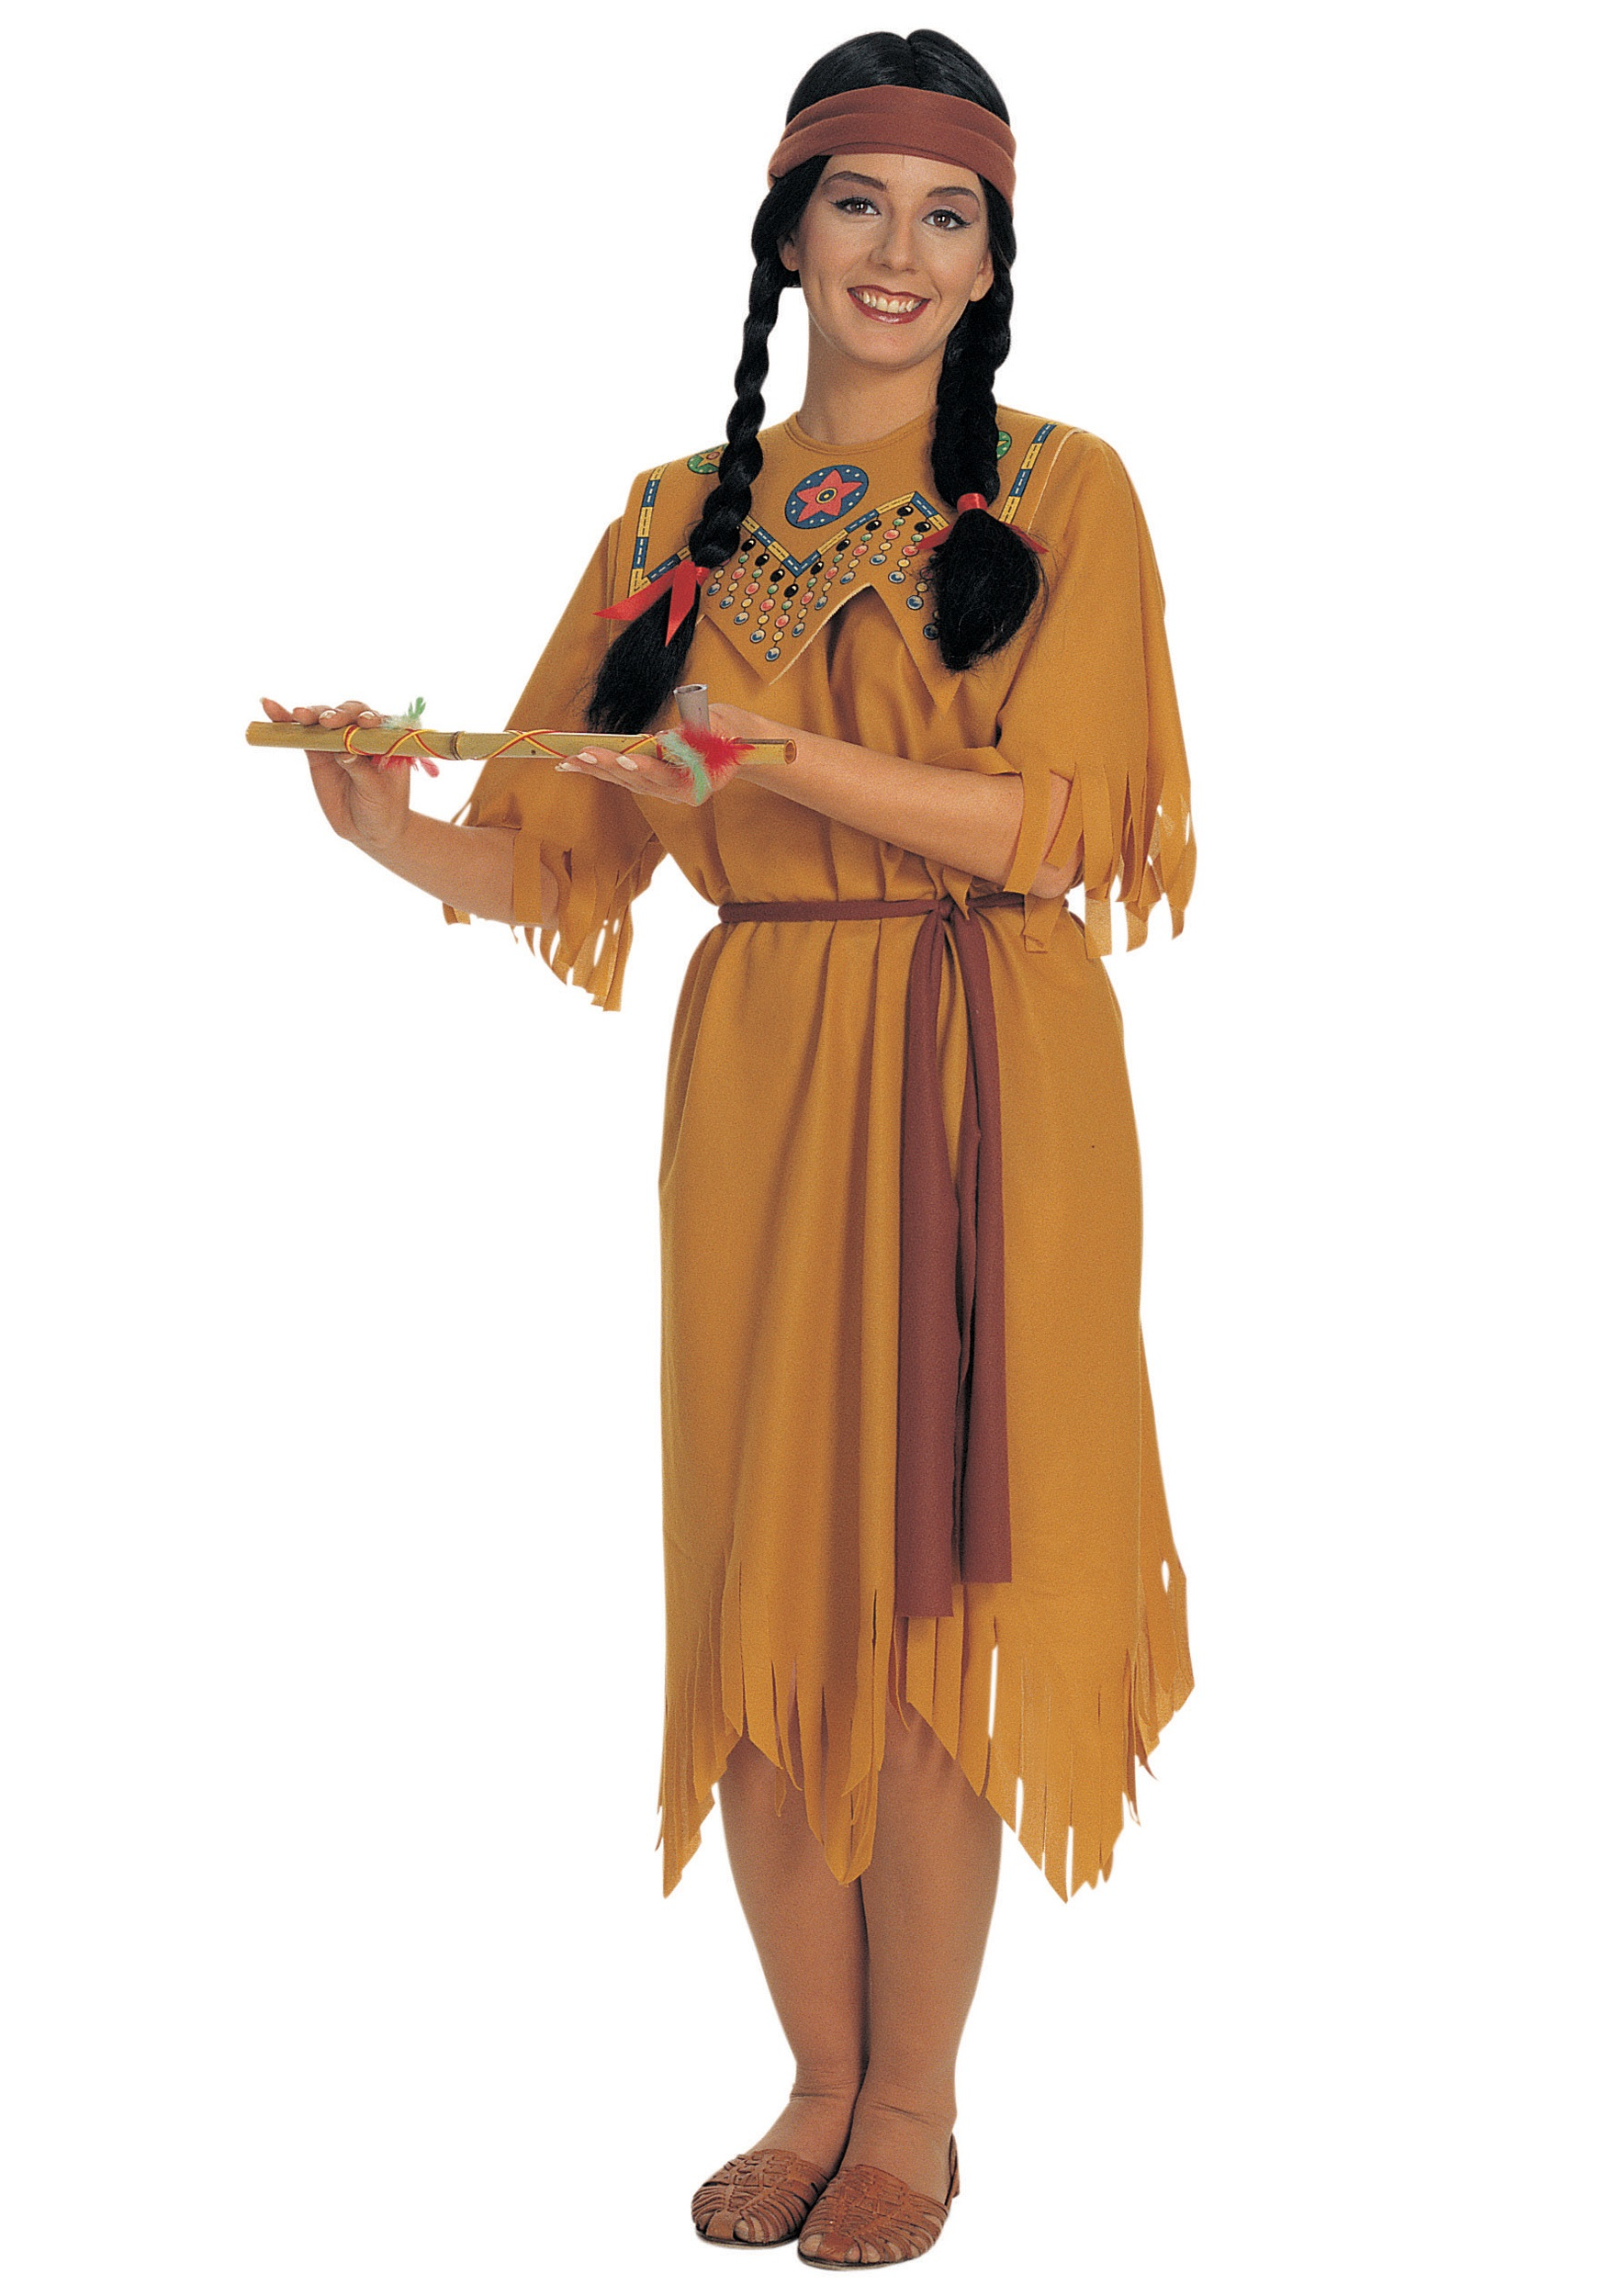 native american costume - Native American Costume Halloween